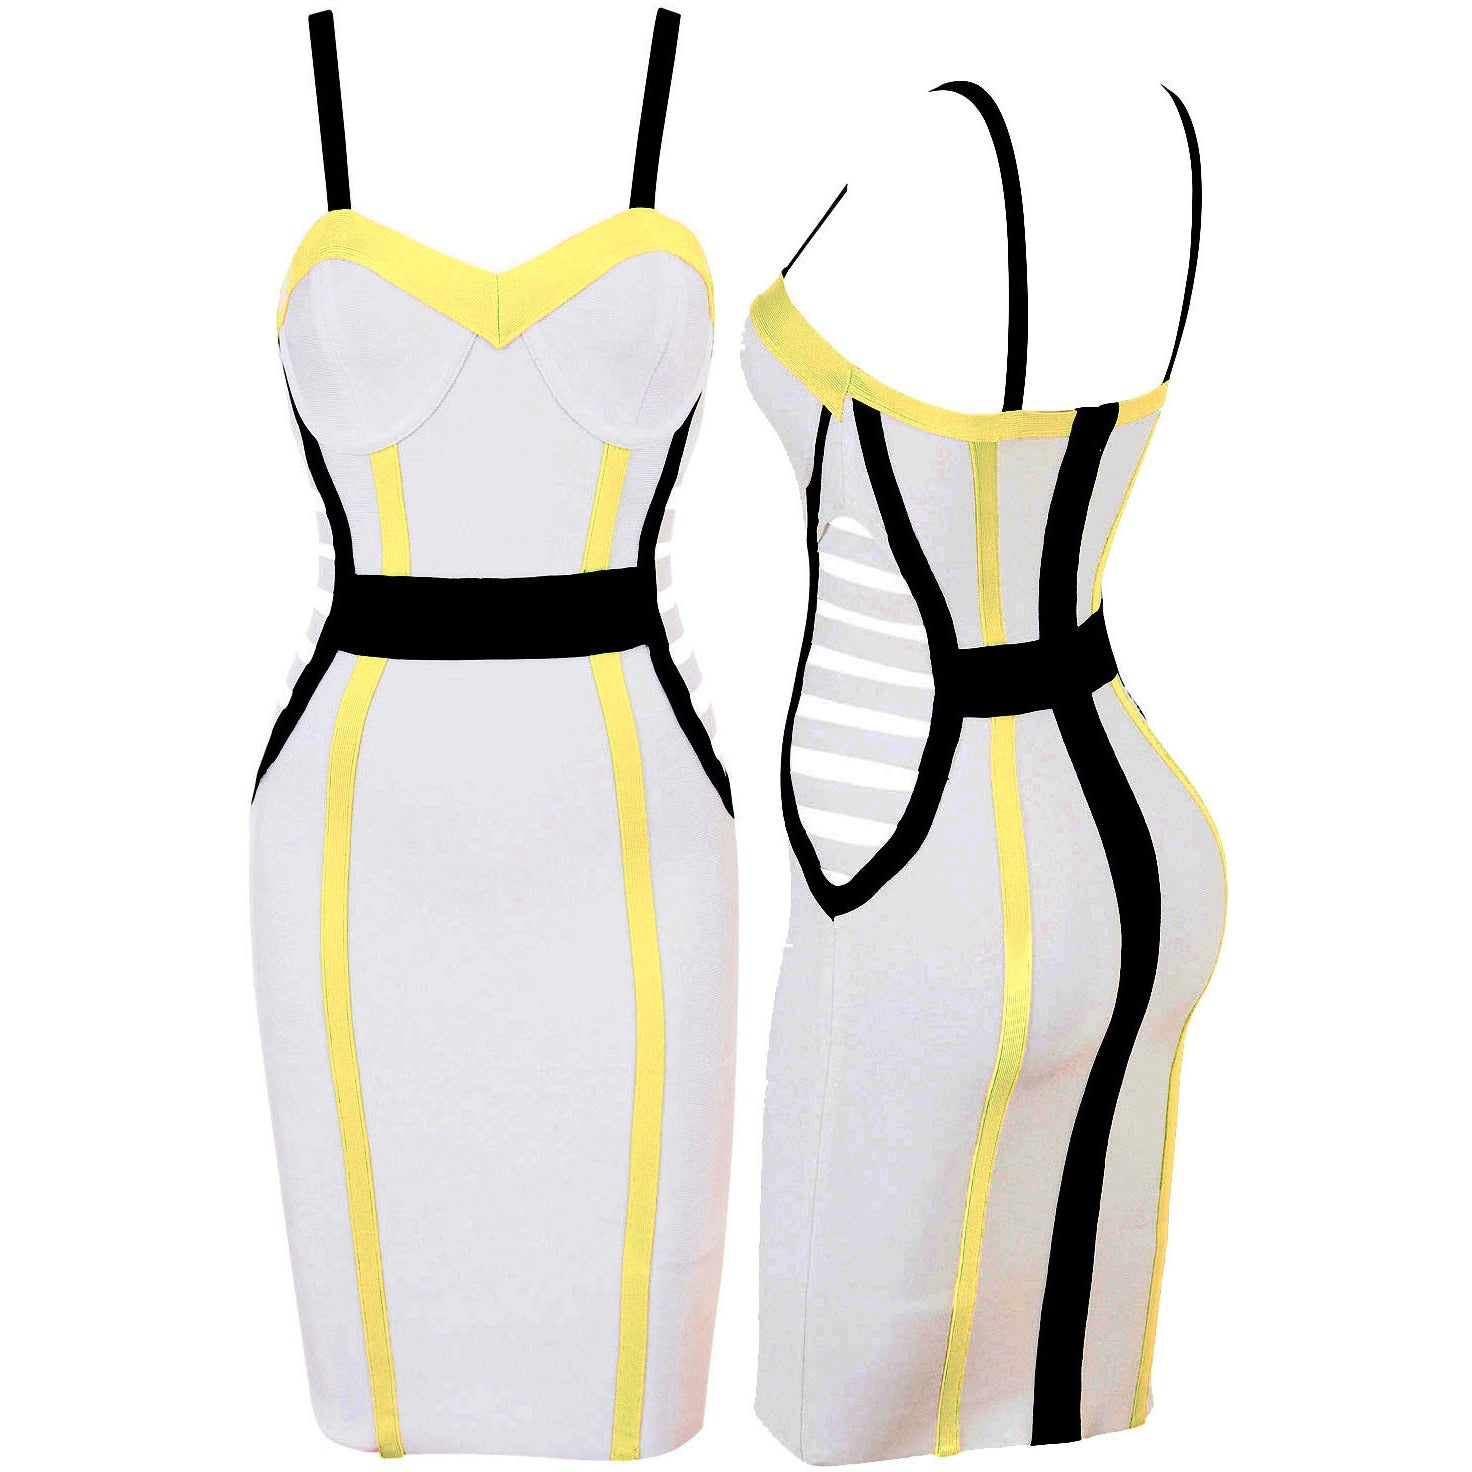 White Sleeveless Top Bandage Dress LAVELIQ SALE - LAVELIQ - 2